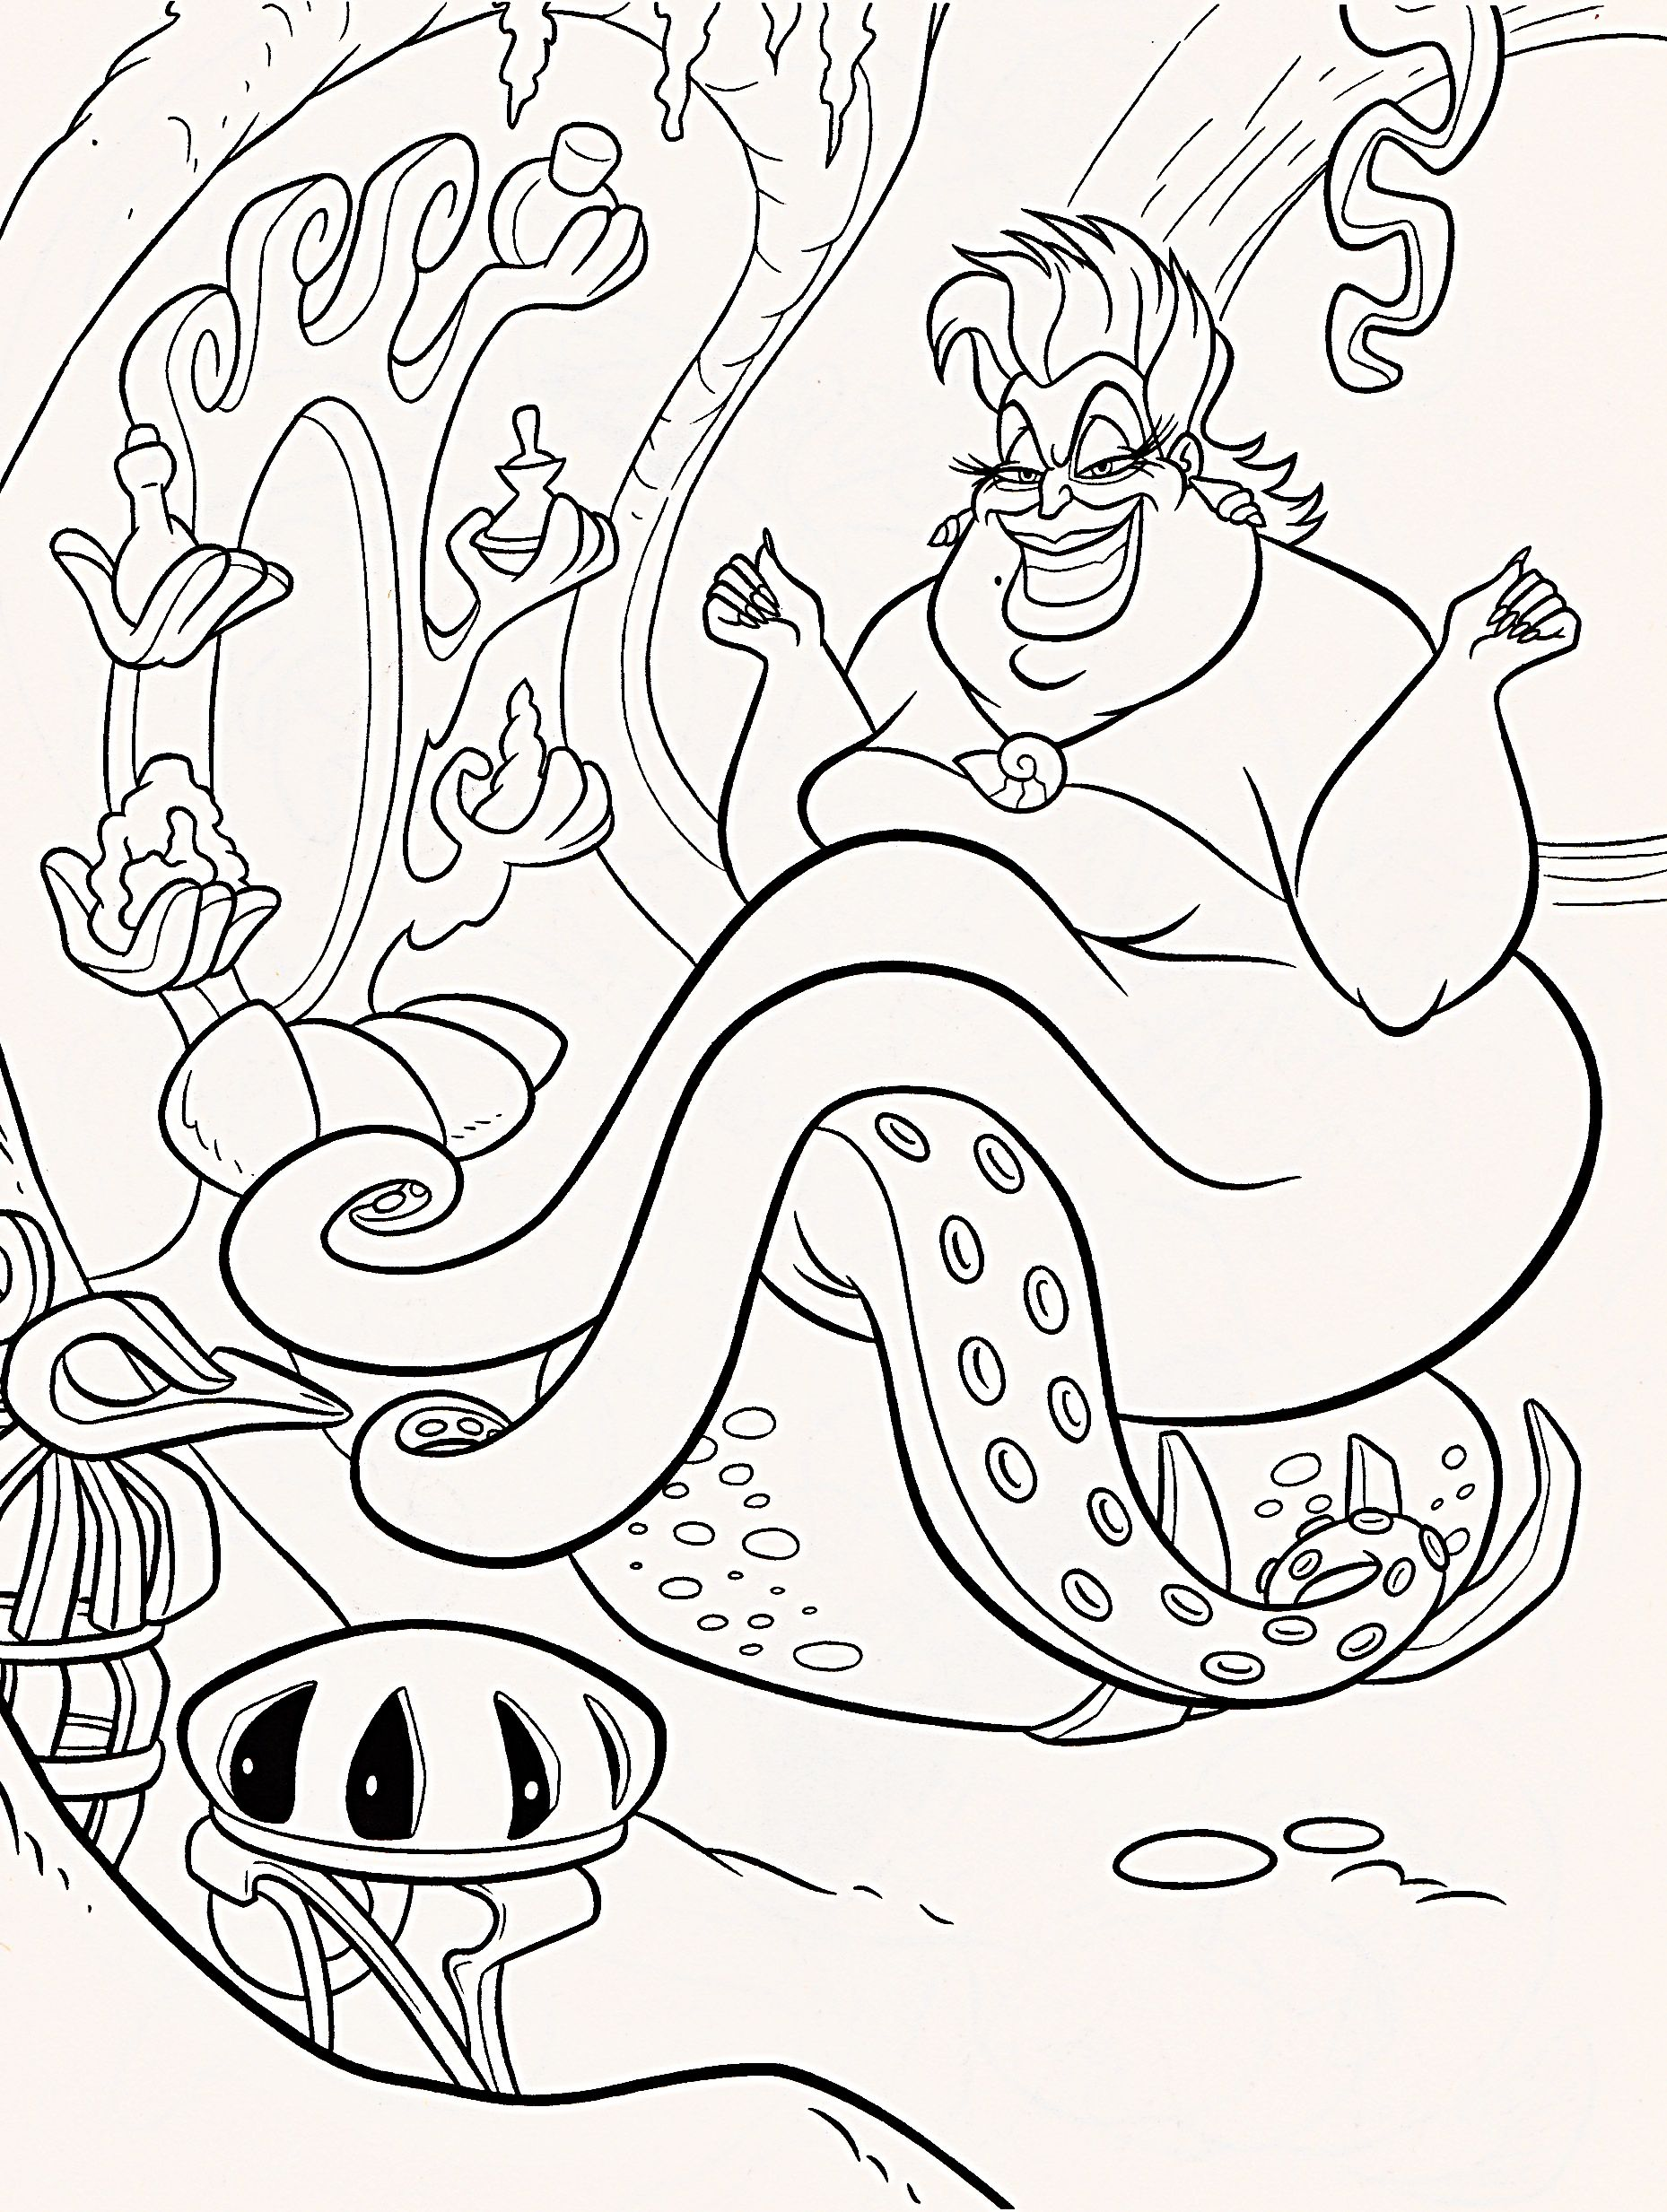 ursula coloring pages 05 Coloring Pinterest Ursula